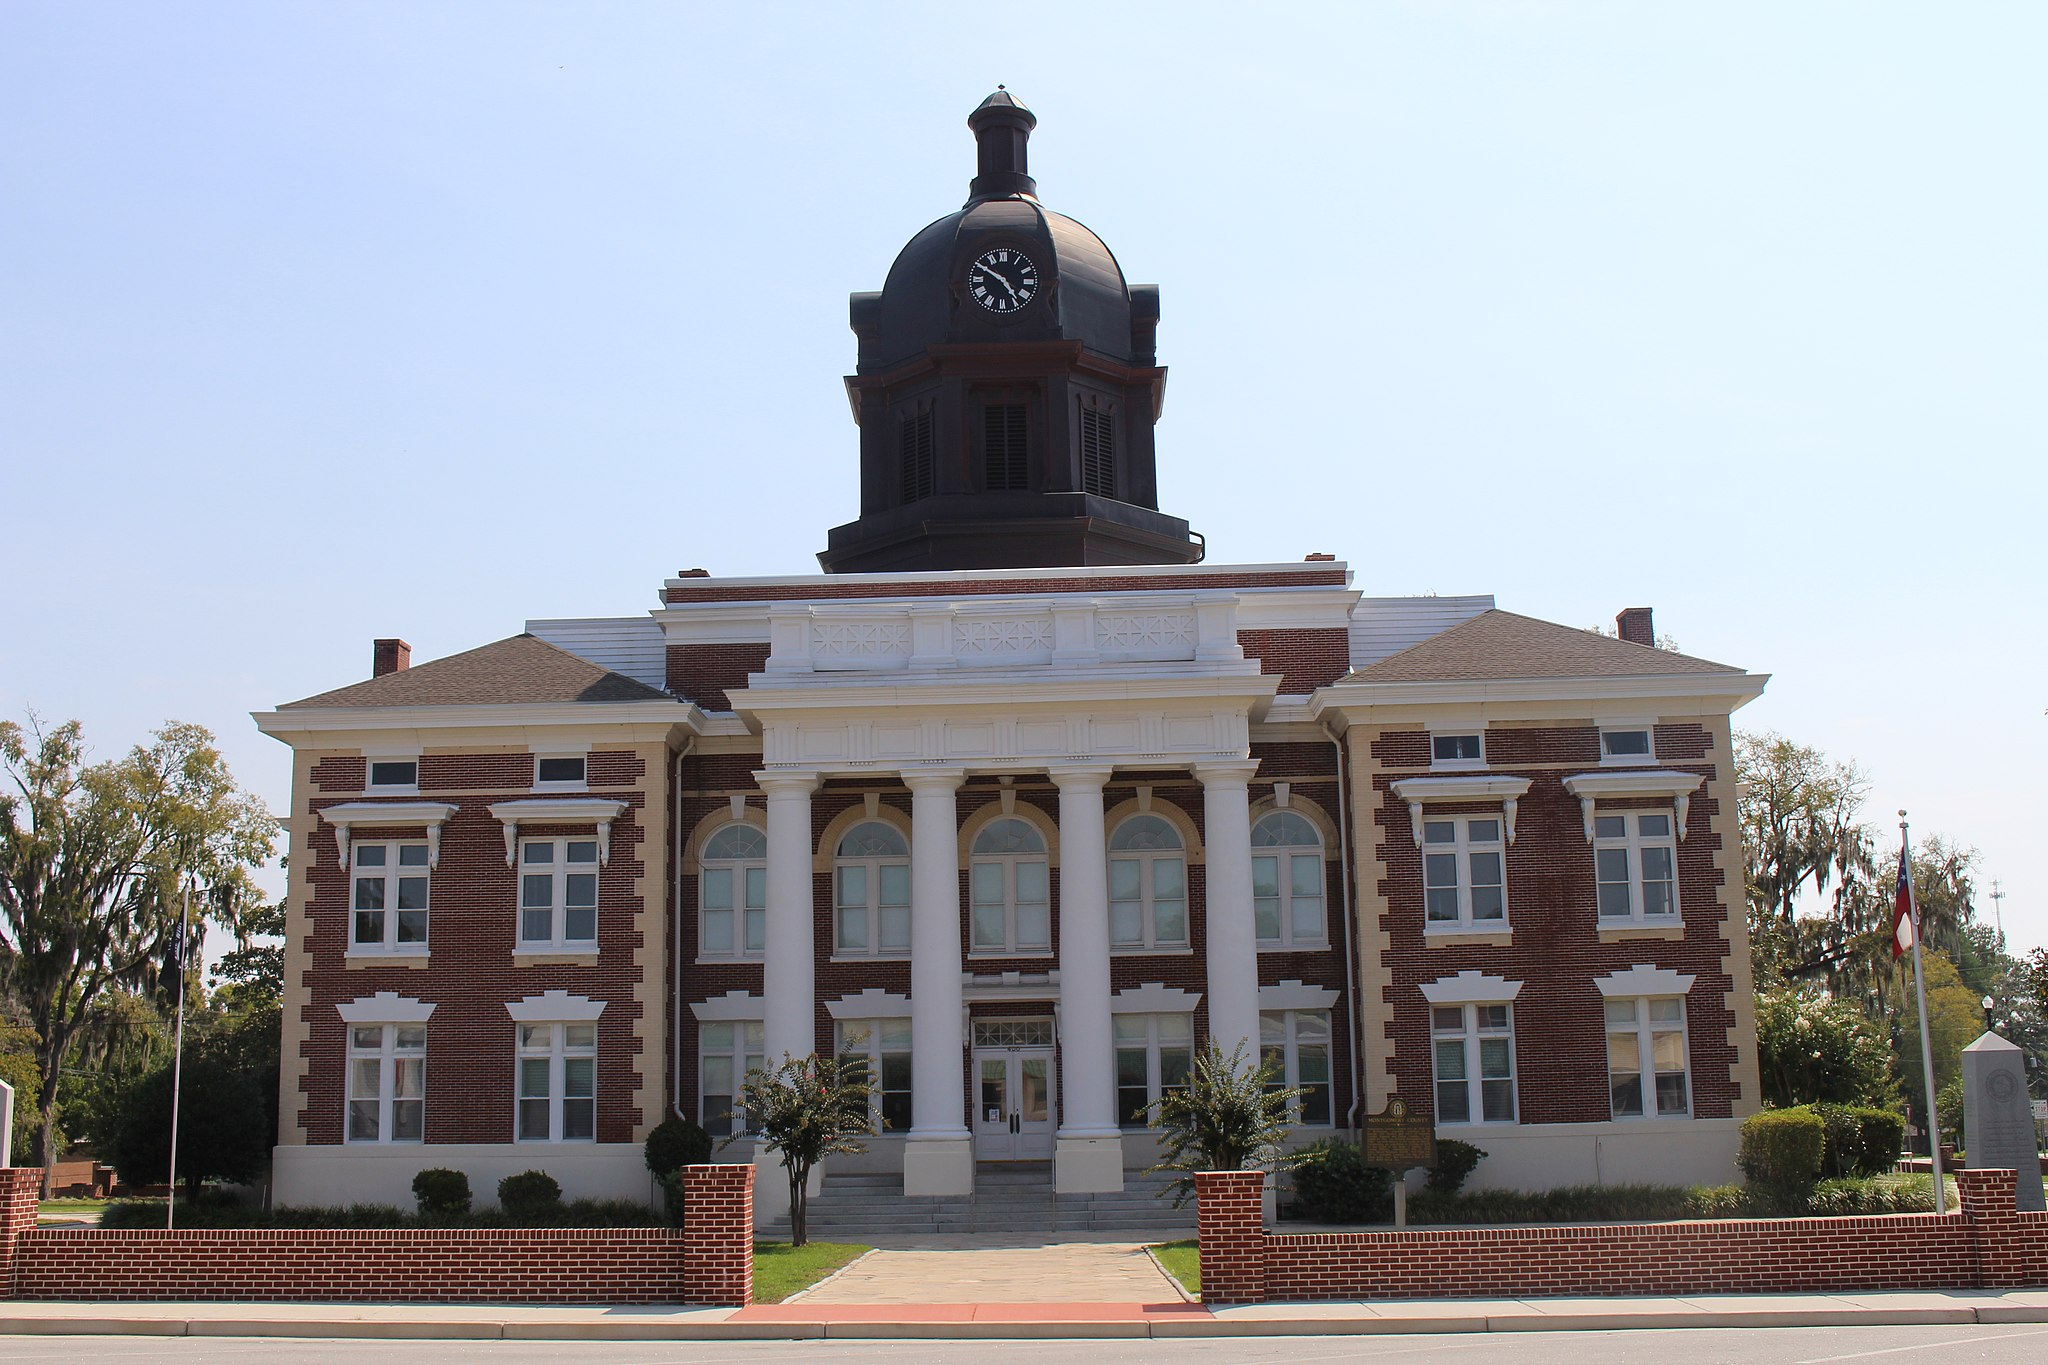 Montgomery County Courthouse (Mount Vernon, Georgia)